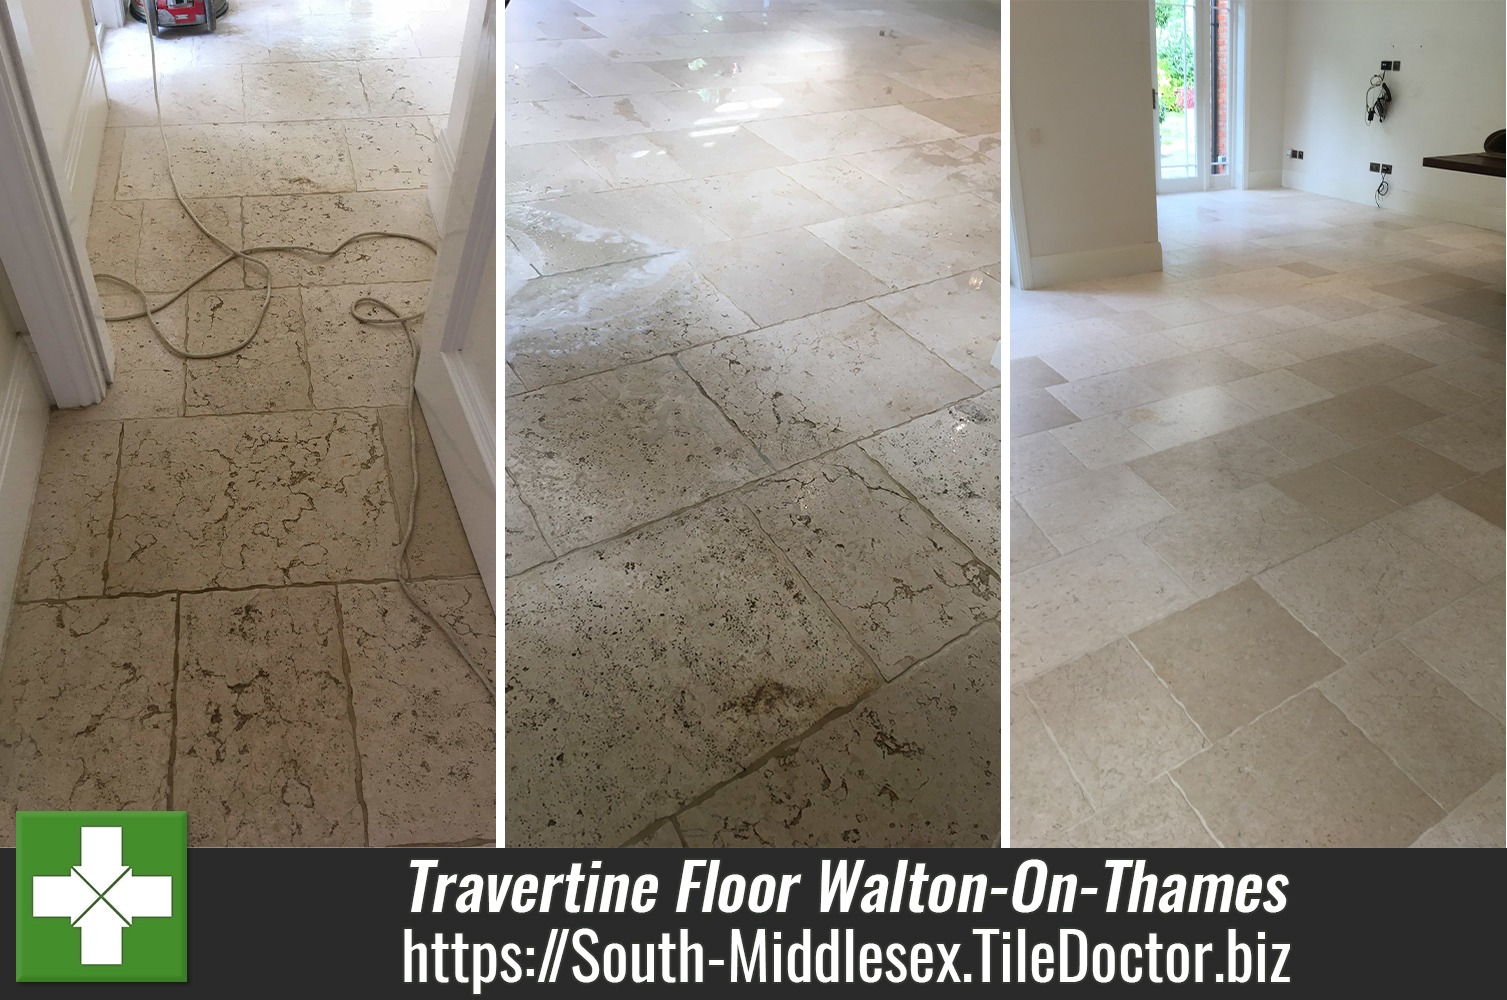 Travertine Floor Cleaned and Sealed in Walton-On-Thames